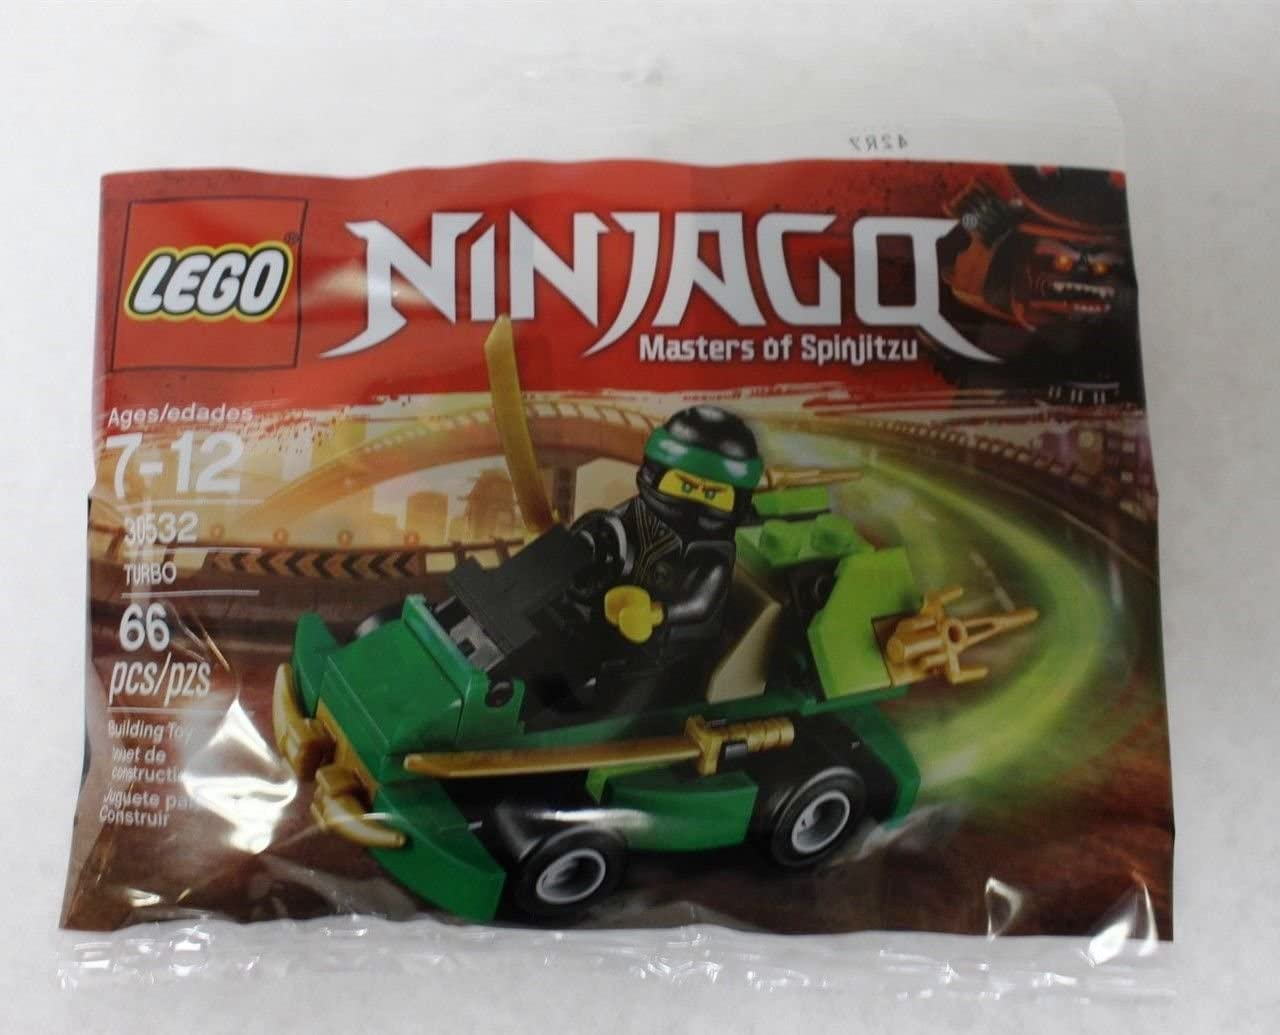 LEGO Ninjago TURBO (30532) Bagged